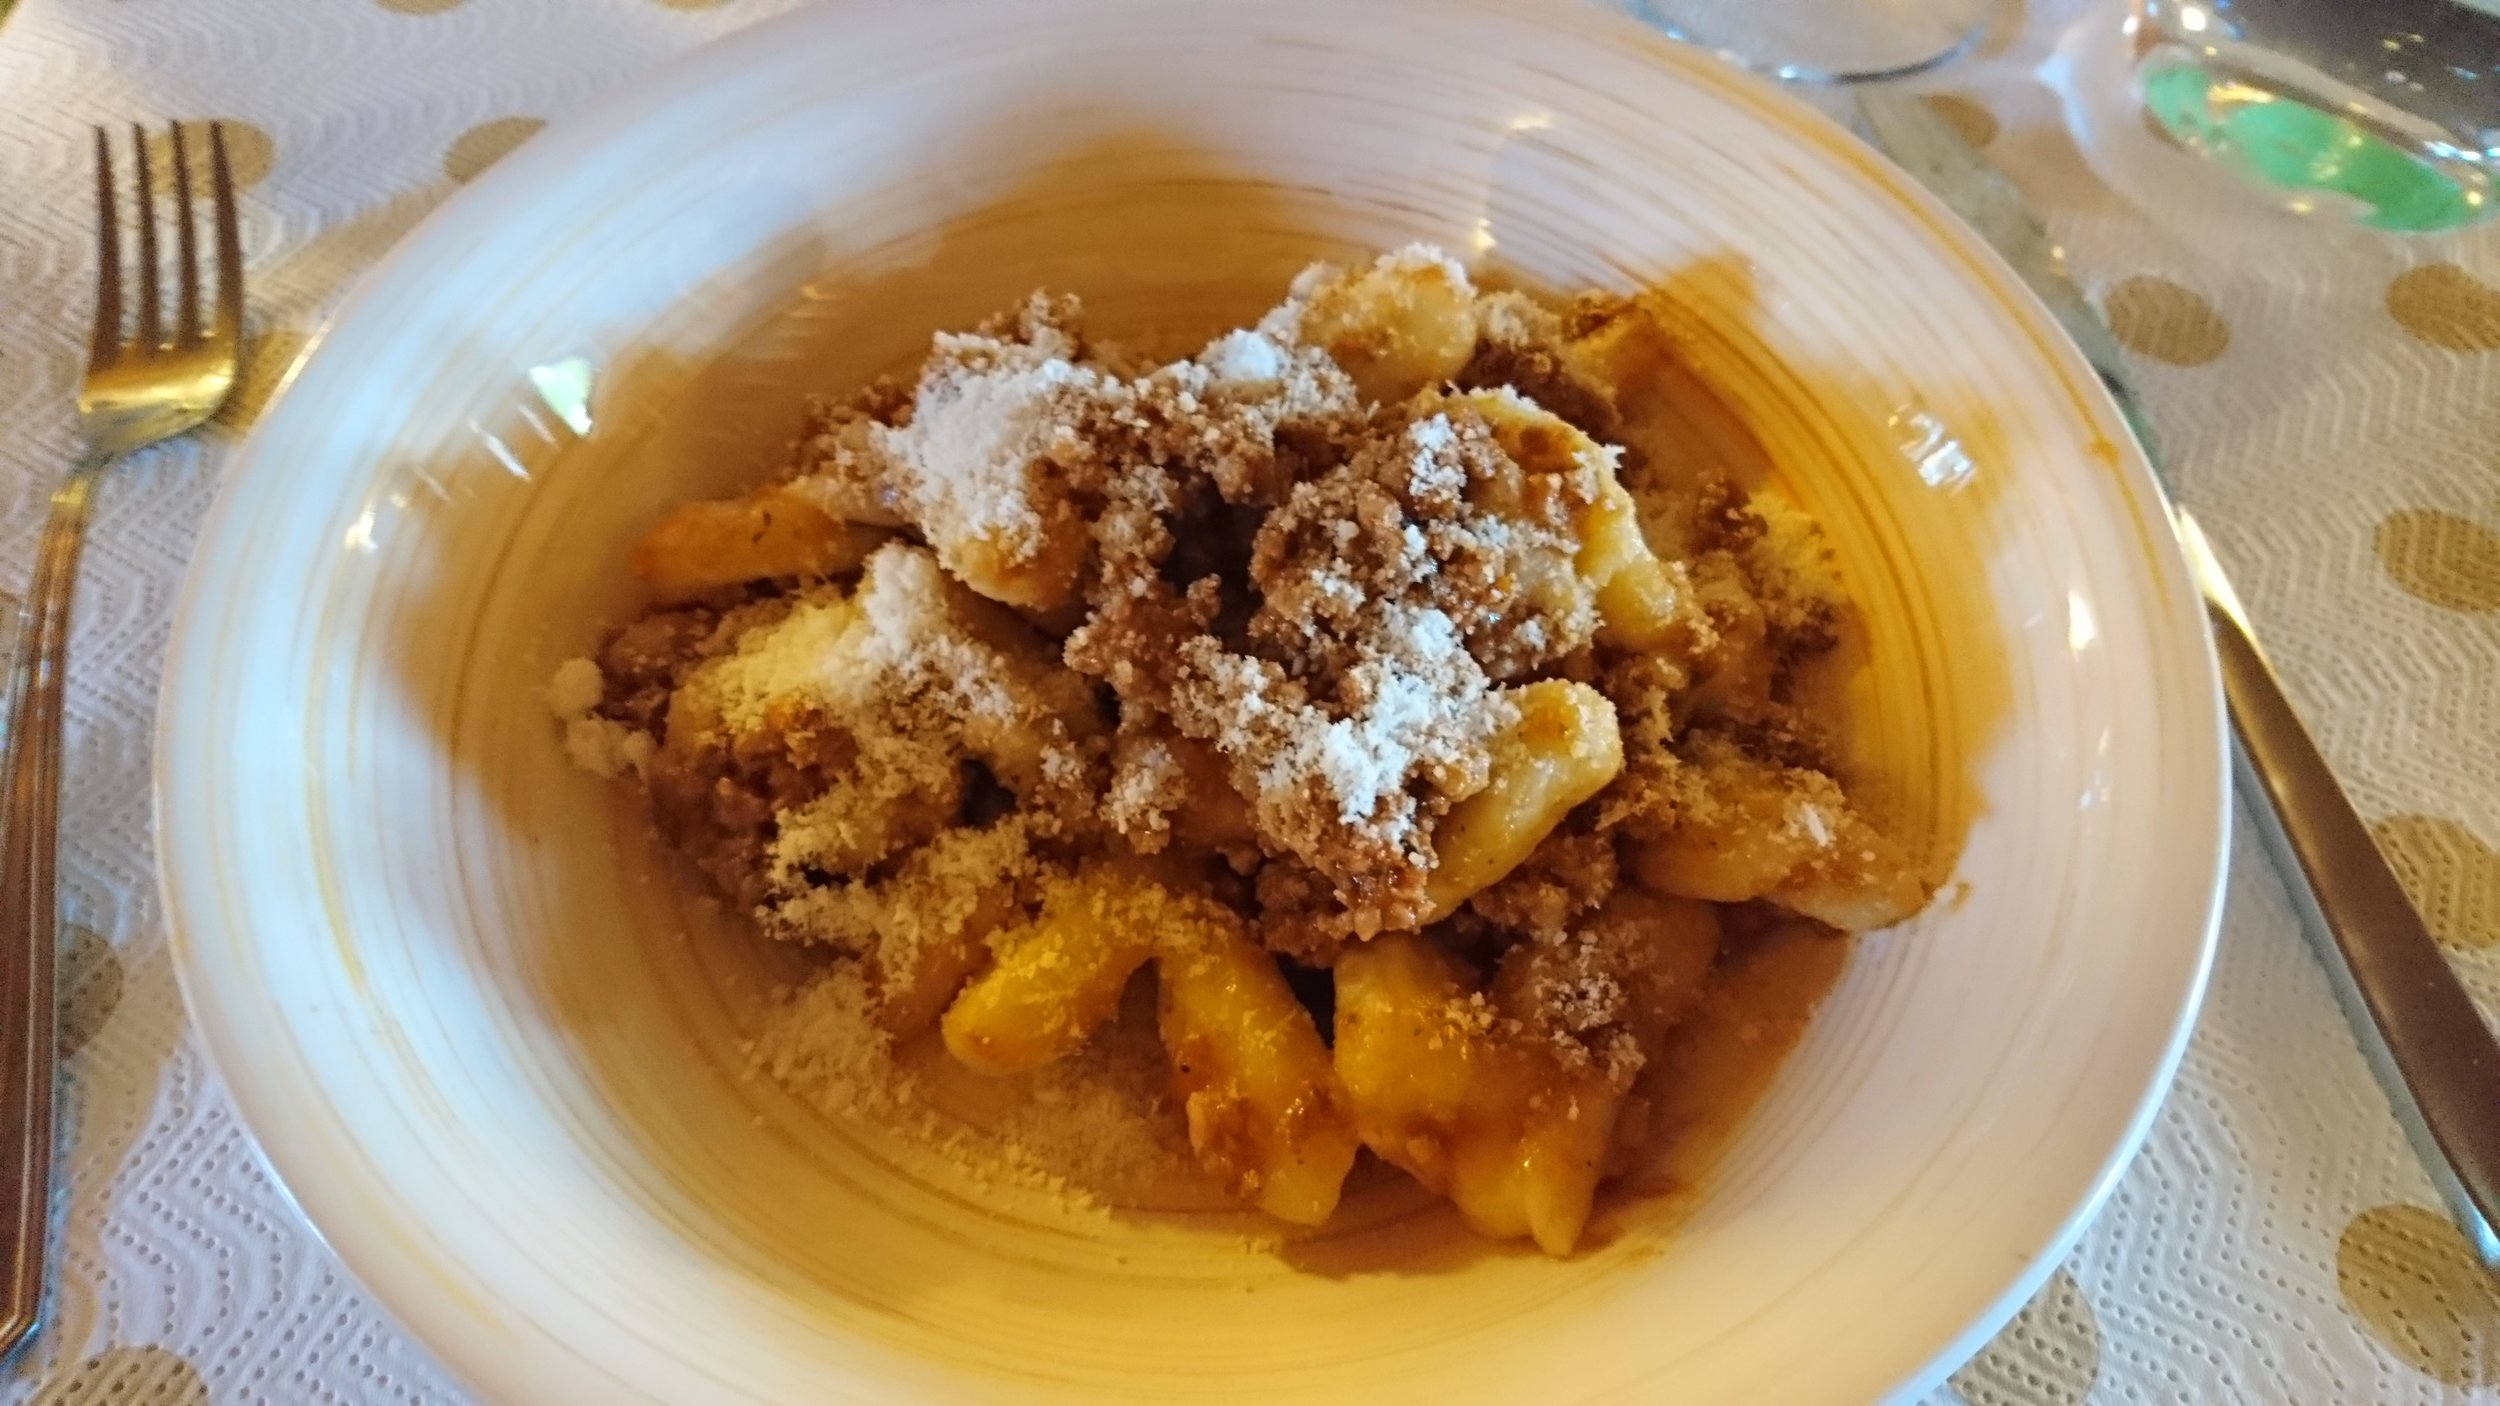 Finished gnocchi topped with ragu.